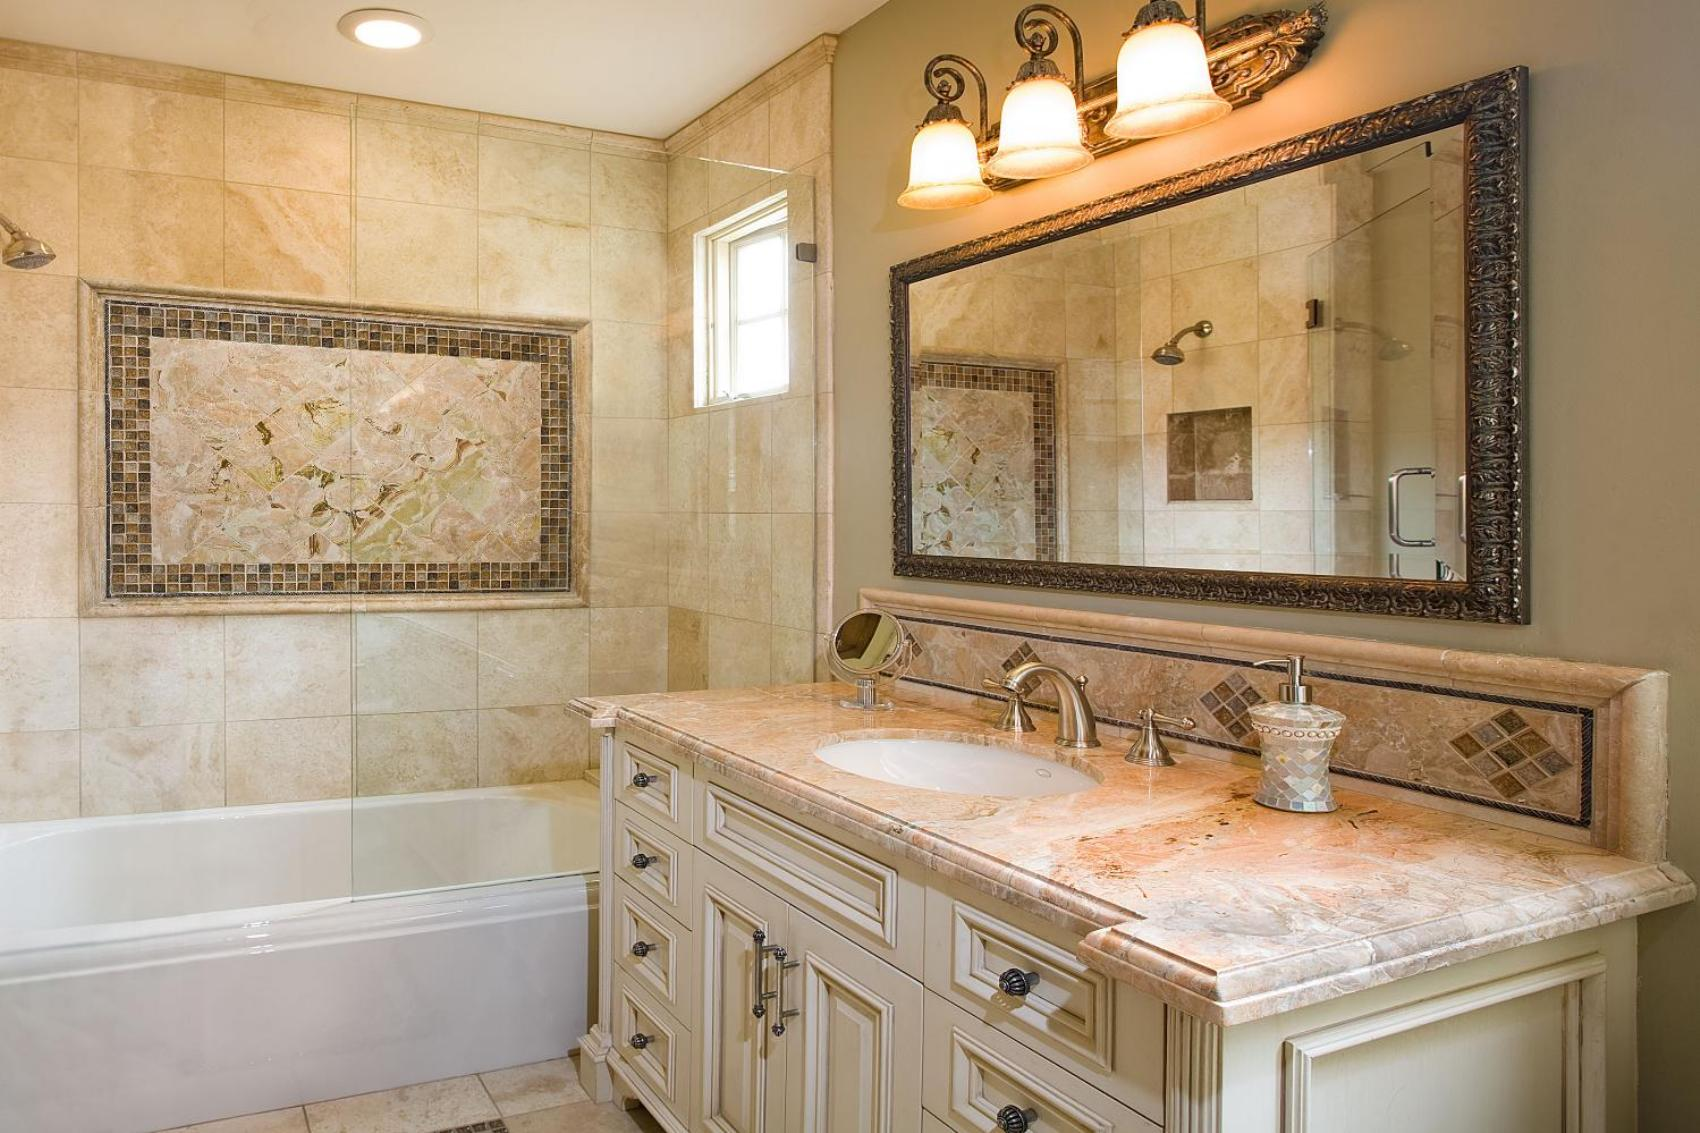 latest bathroom designs image gallery.  25 27 cool granite bathroom floor tiles ideas and pictures